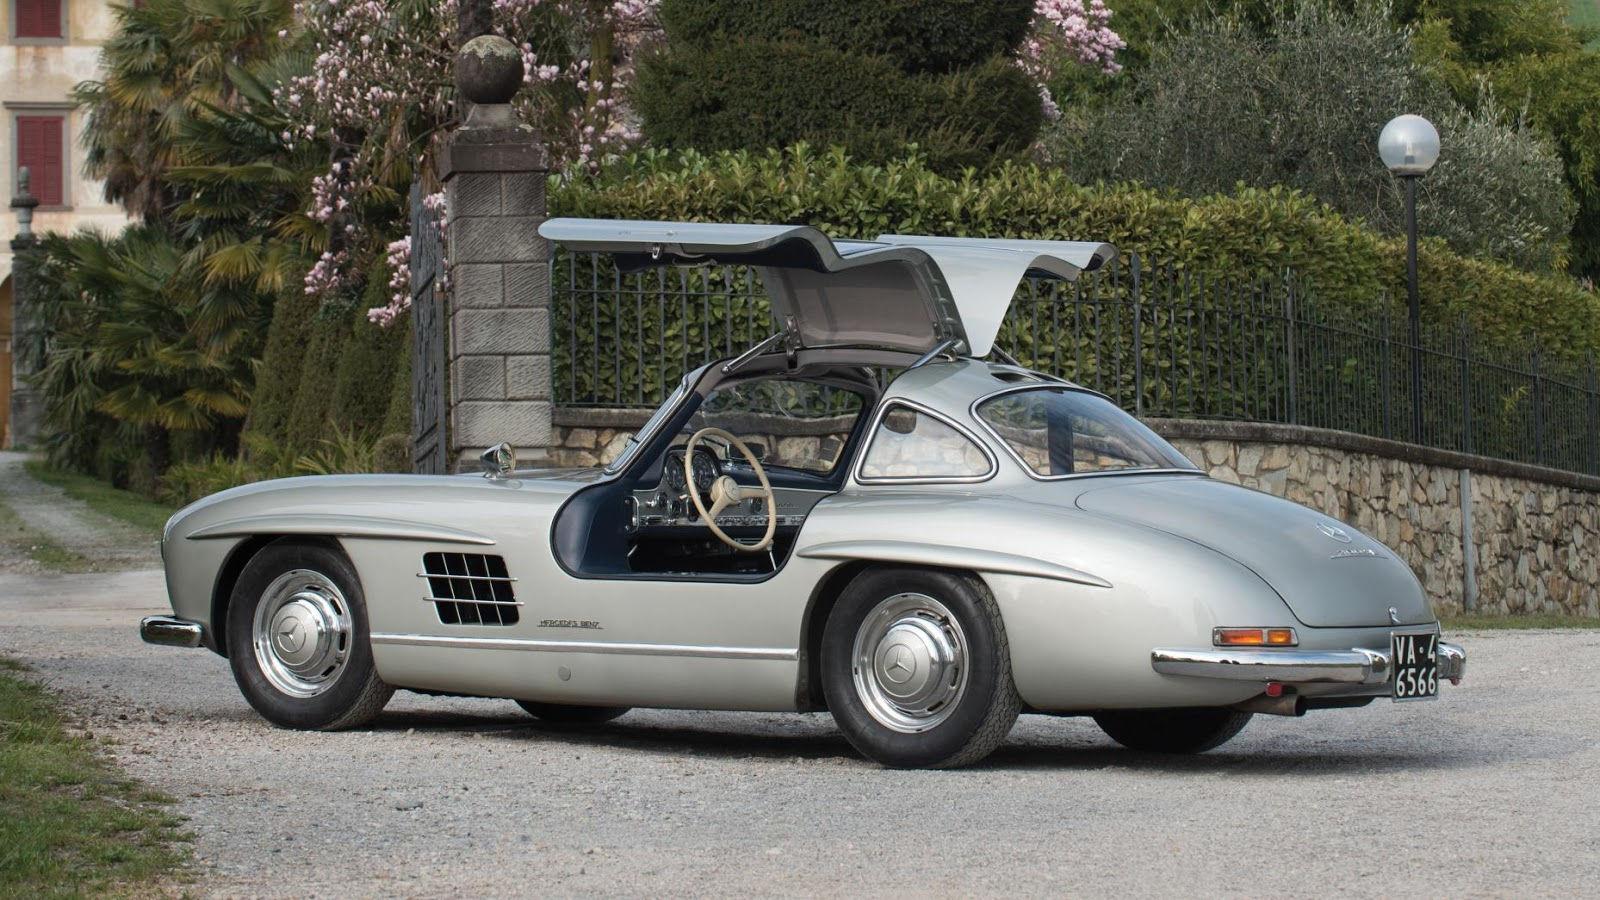 1955 Mercedes-Benz 300 SL Gullwing - £ 971k